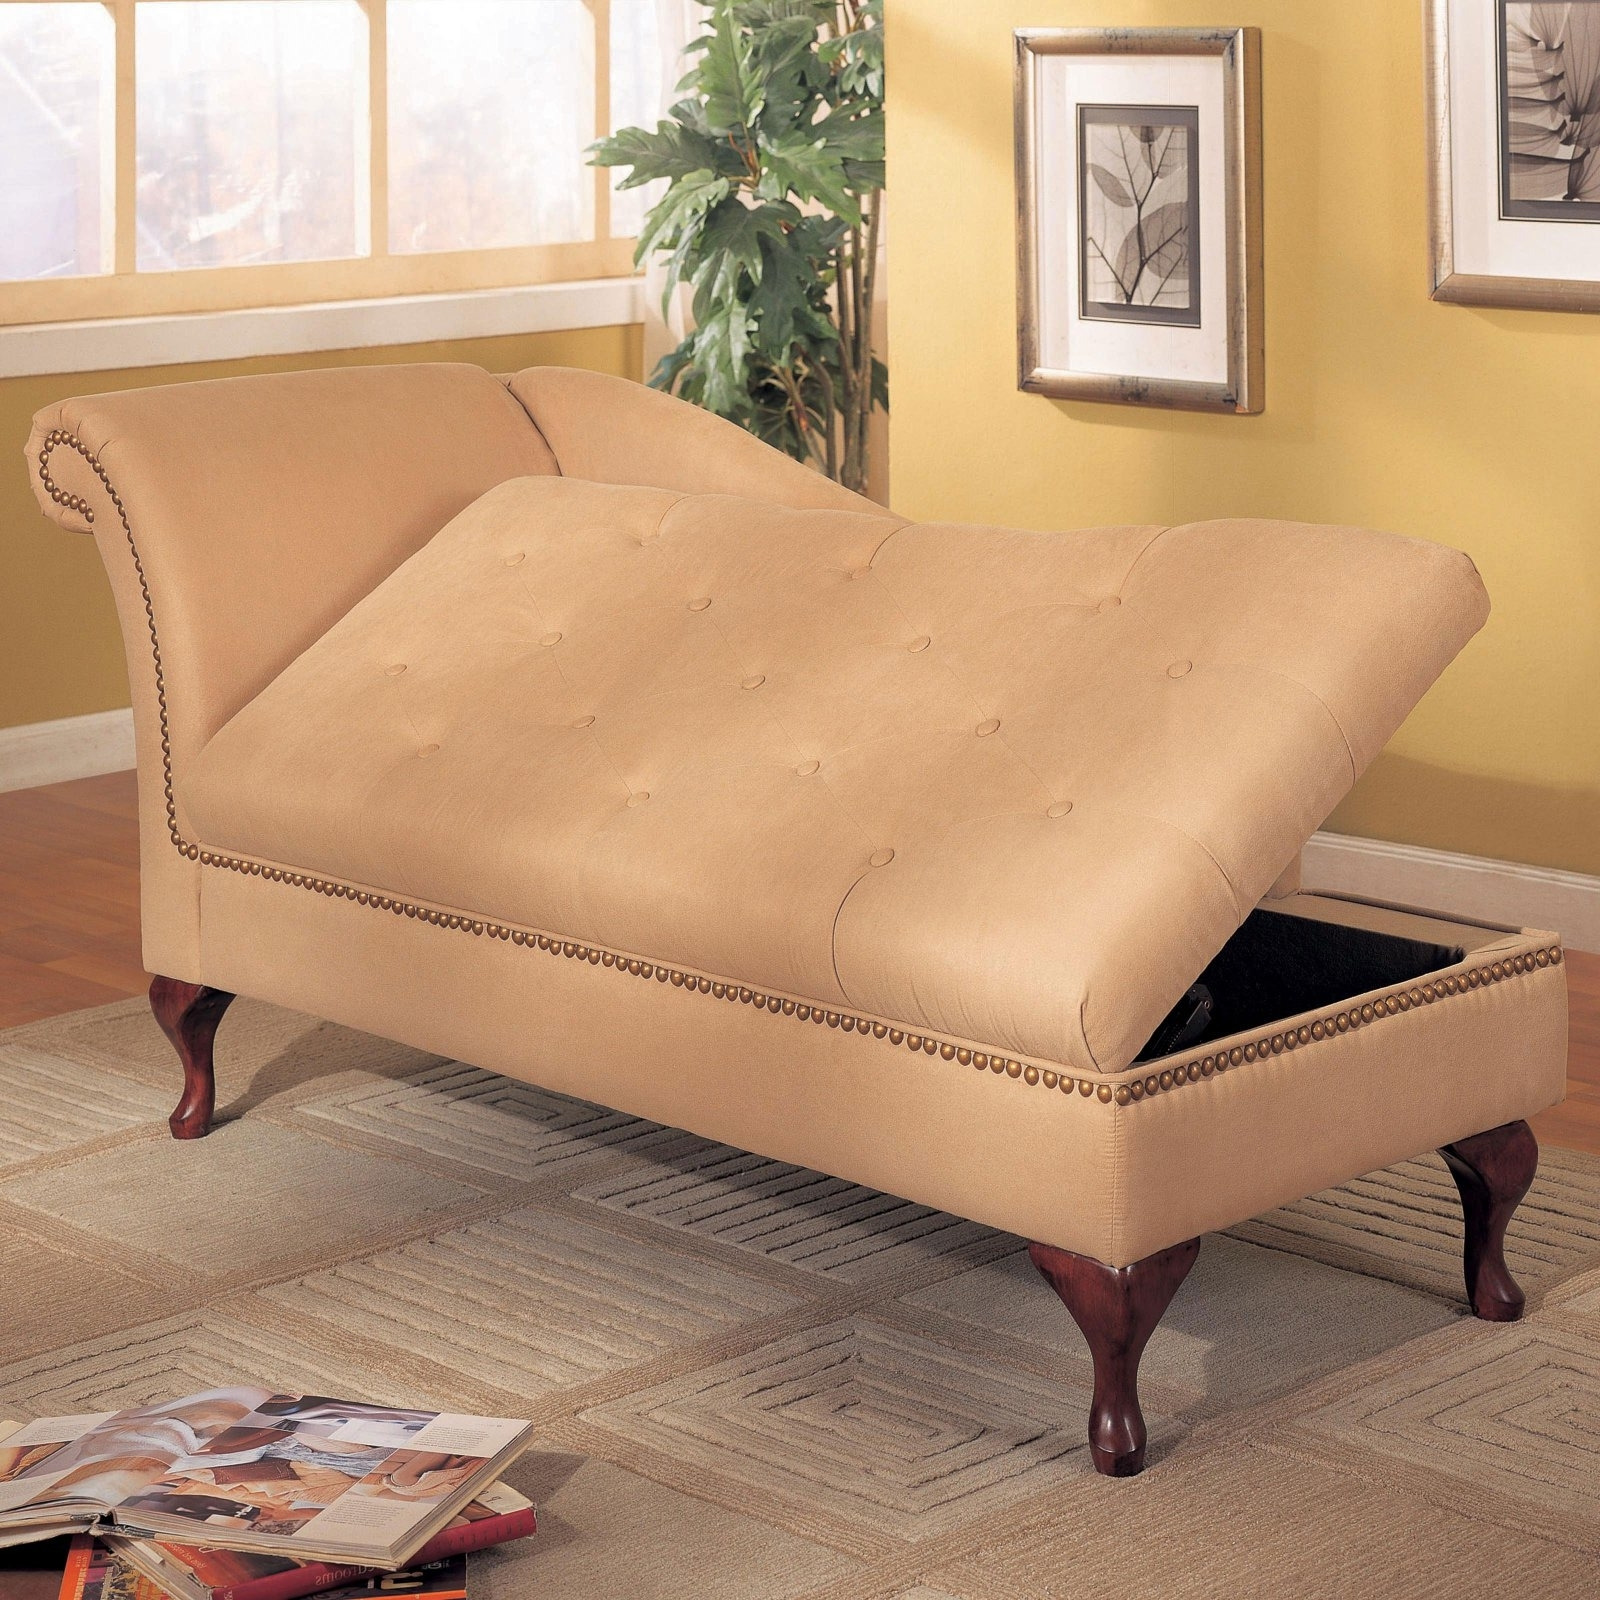 Well Known Indoor Chaises Inside Indoor Chaise › Indoor Chaise Lounge With Storage Chaise Lounges (View 12 of 15)